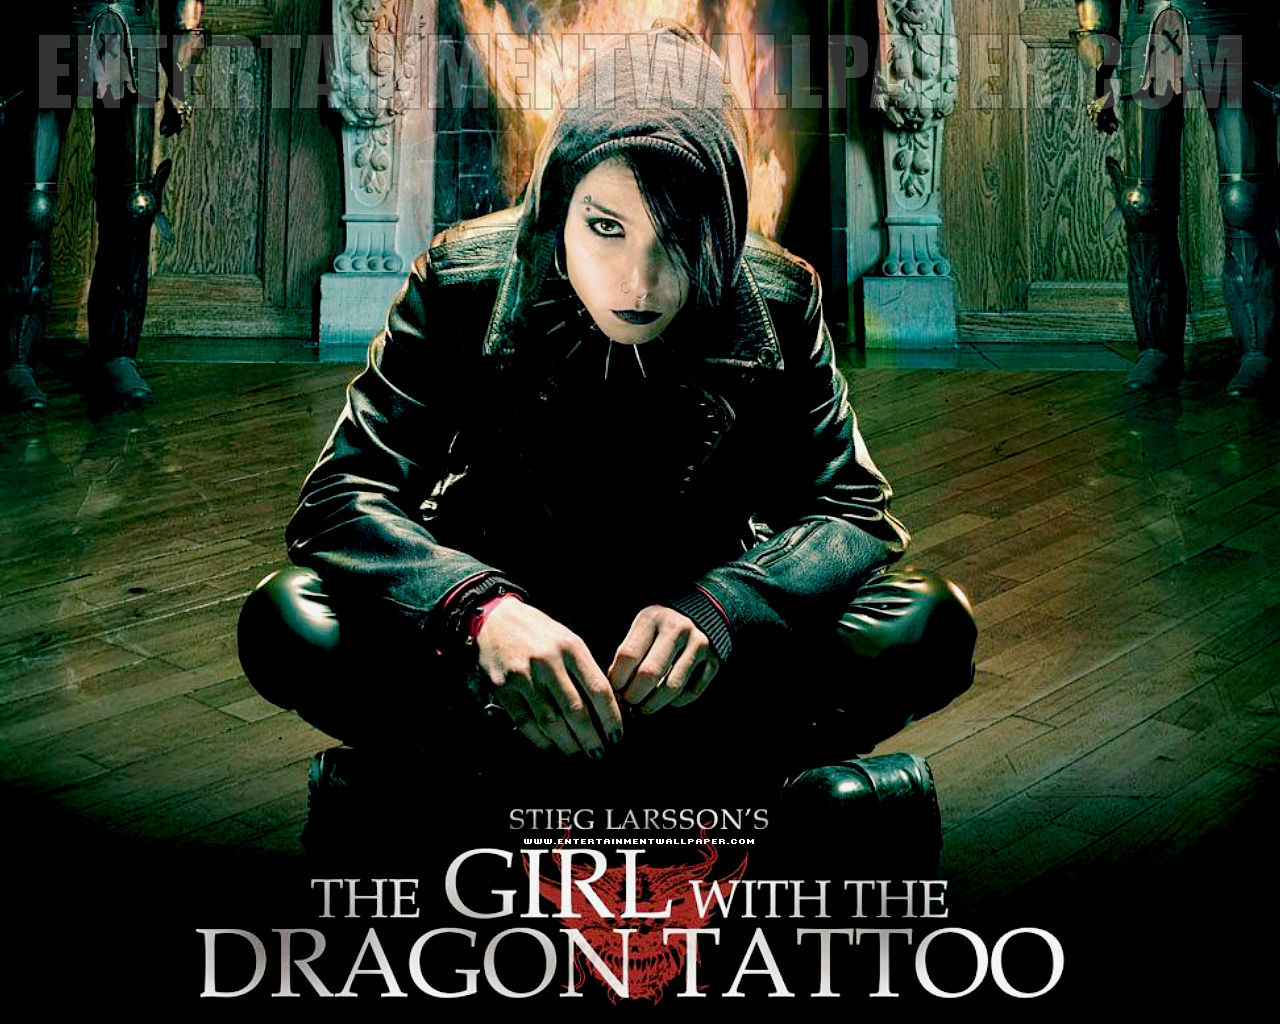 Not a review!: The girl with the dragon tattoo